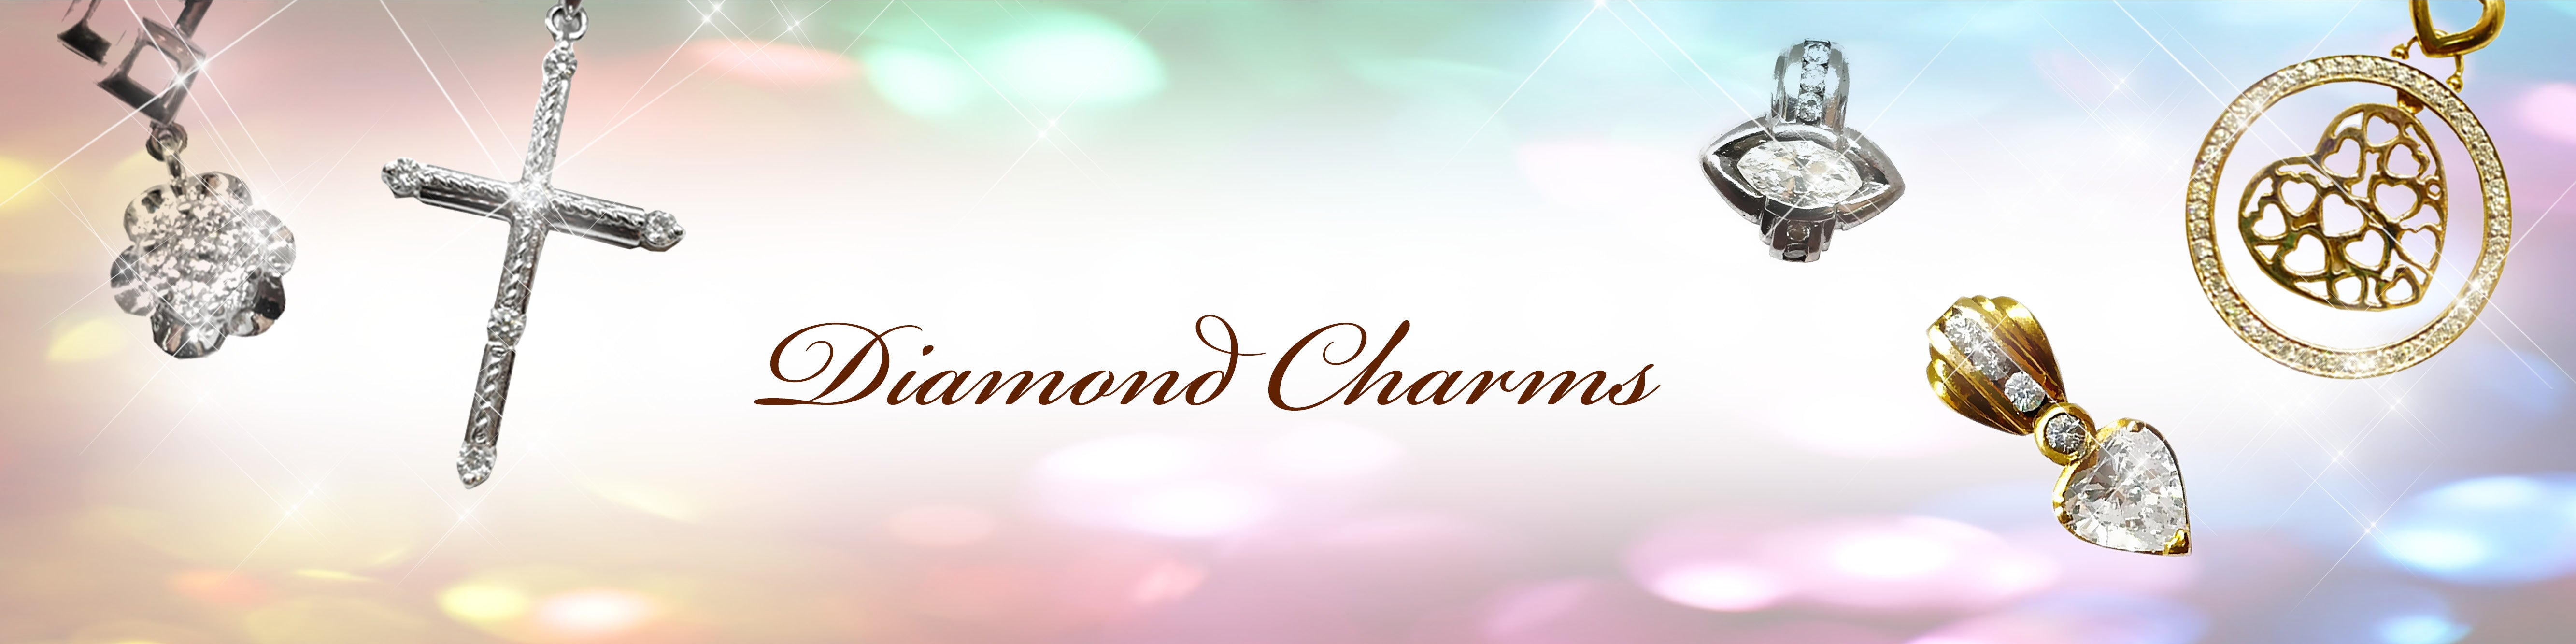 Diamond Charms Collection Cover Photo